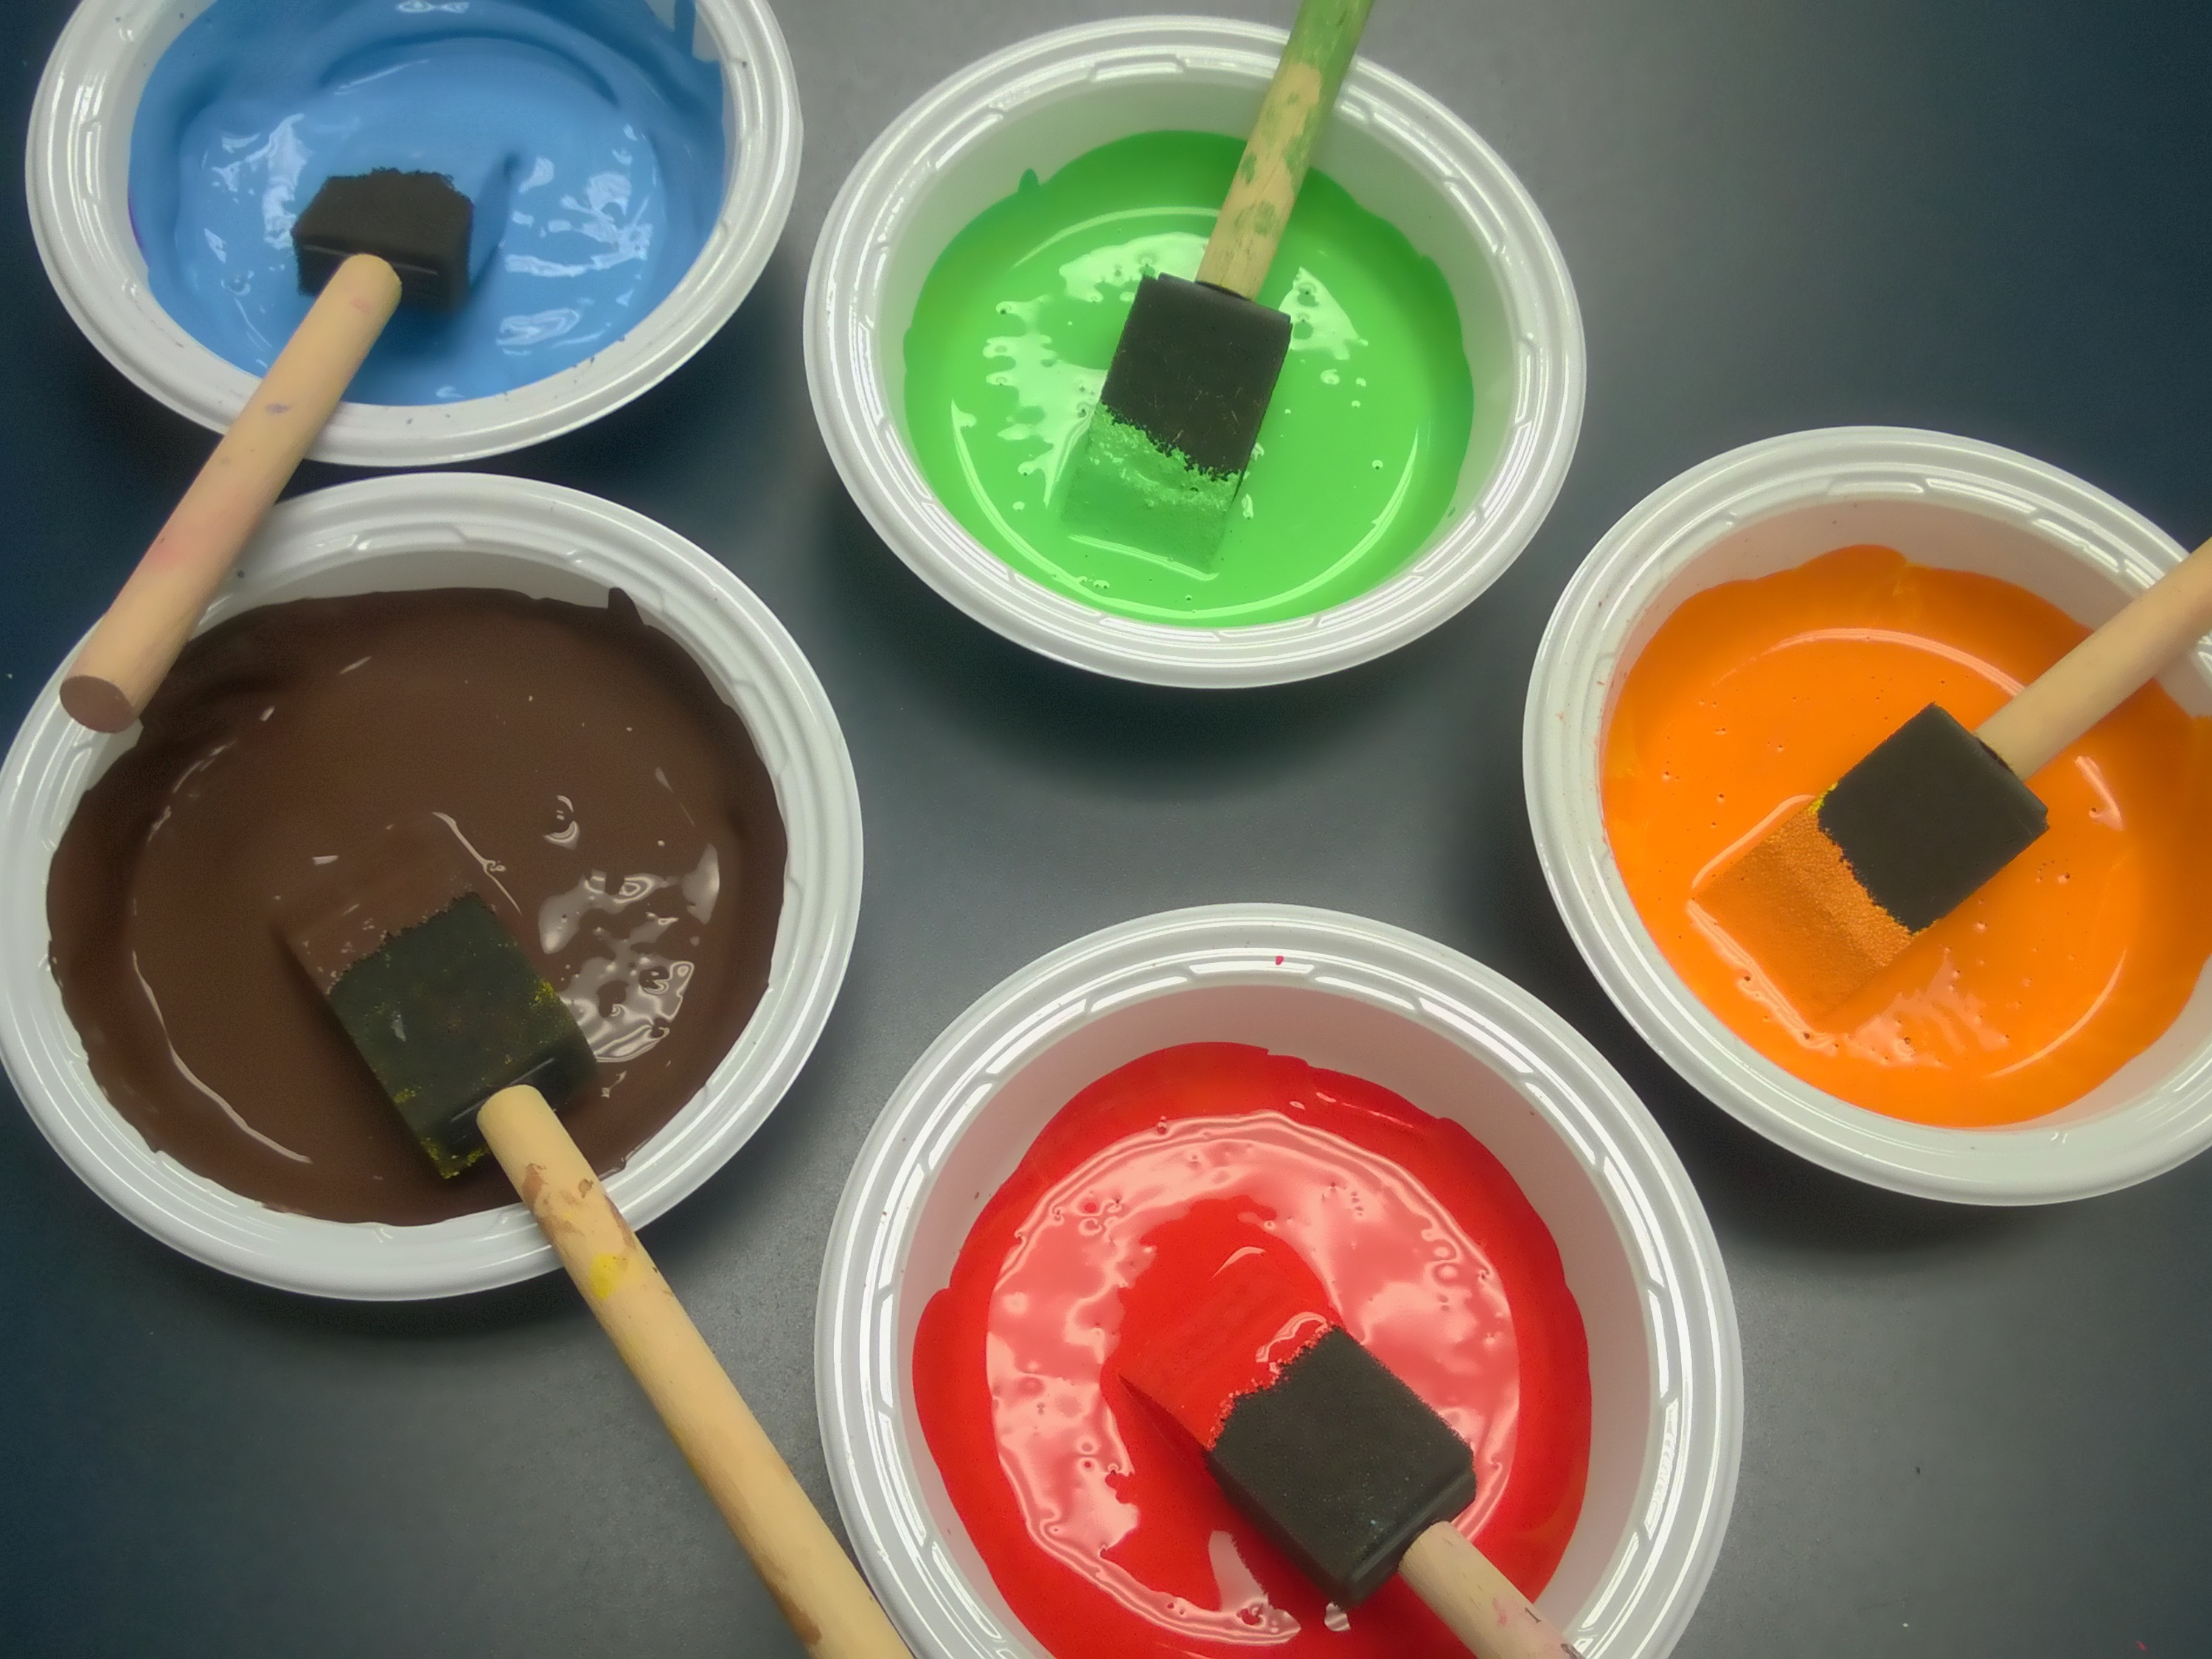 Paints in containers